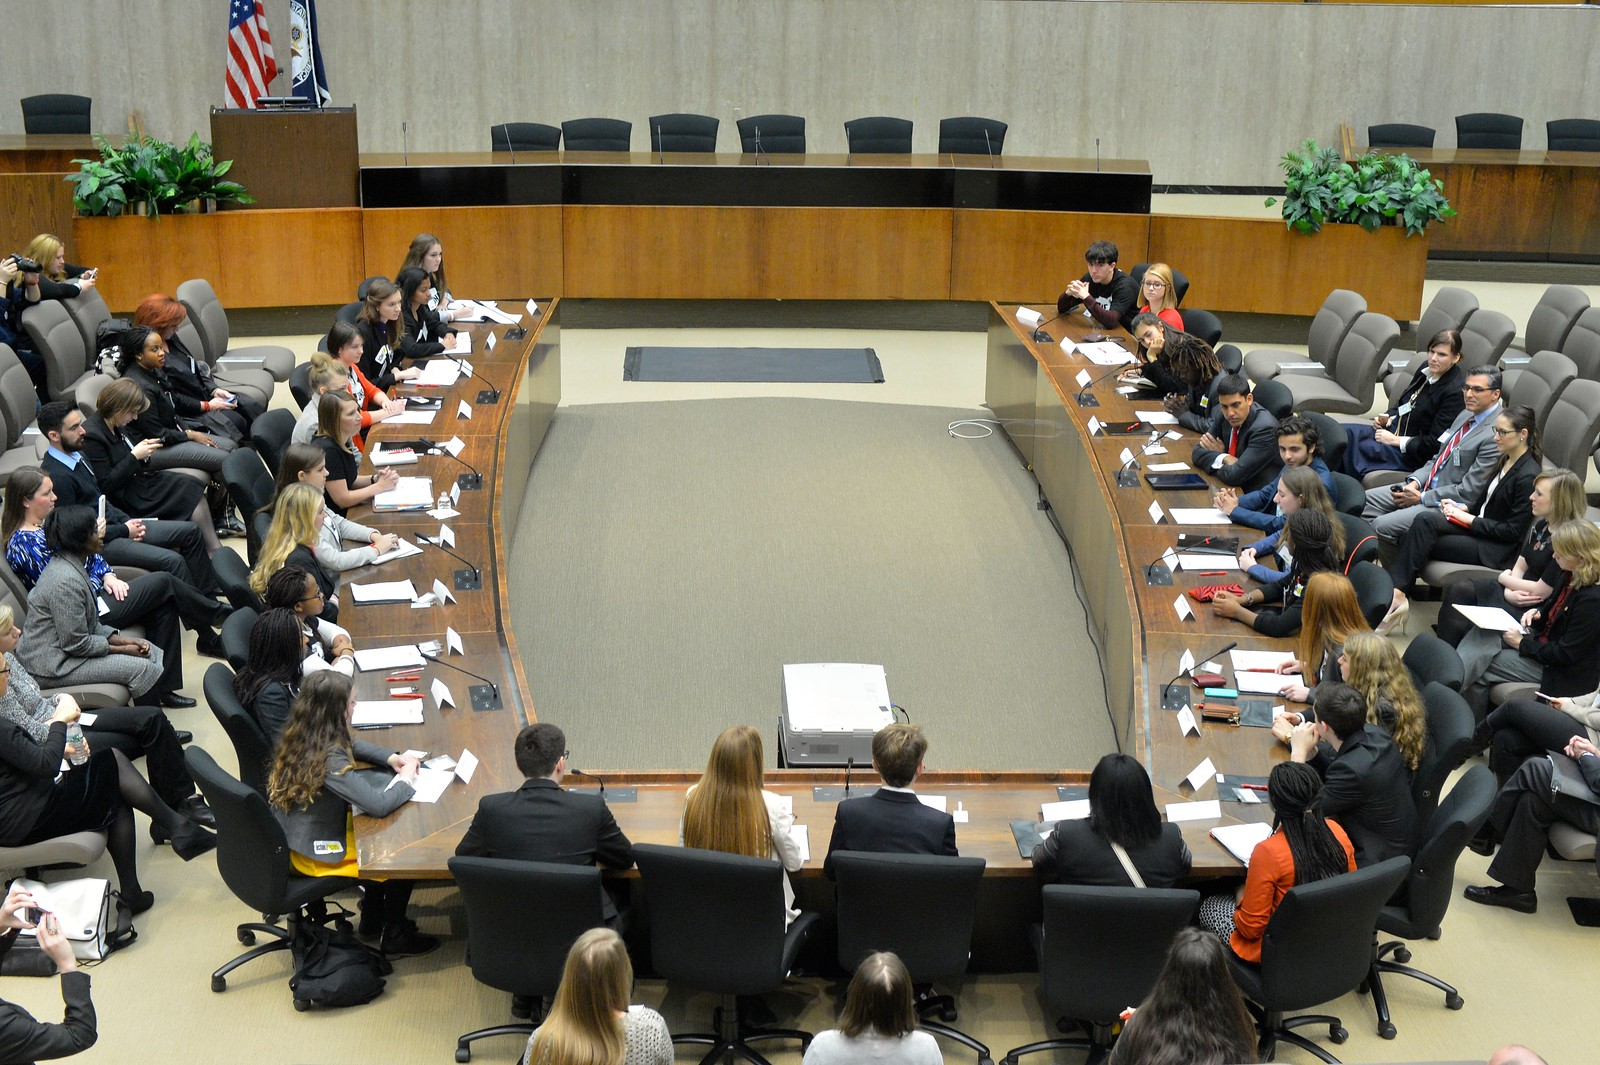 Deputy Secretary Higginbottom and USAID Administrator Shah Host a Roundtable Discussion With Students Participating in the Launch of Action/2015